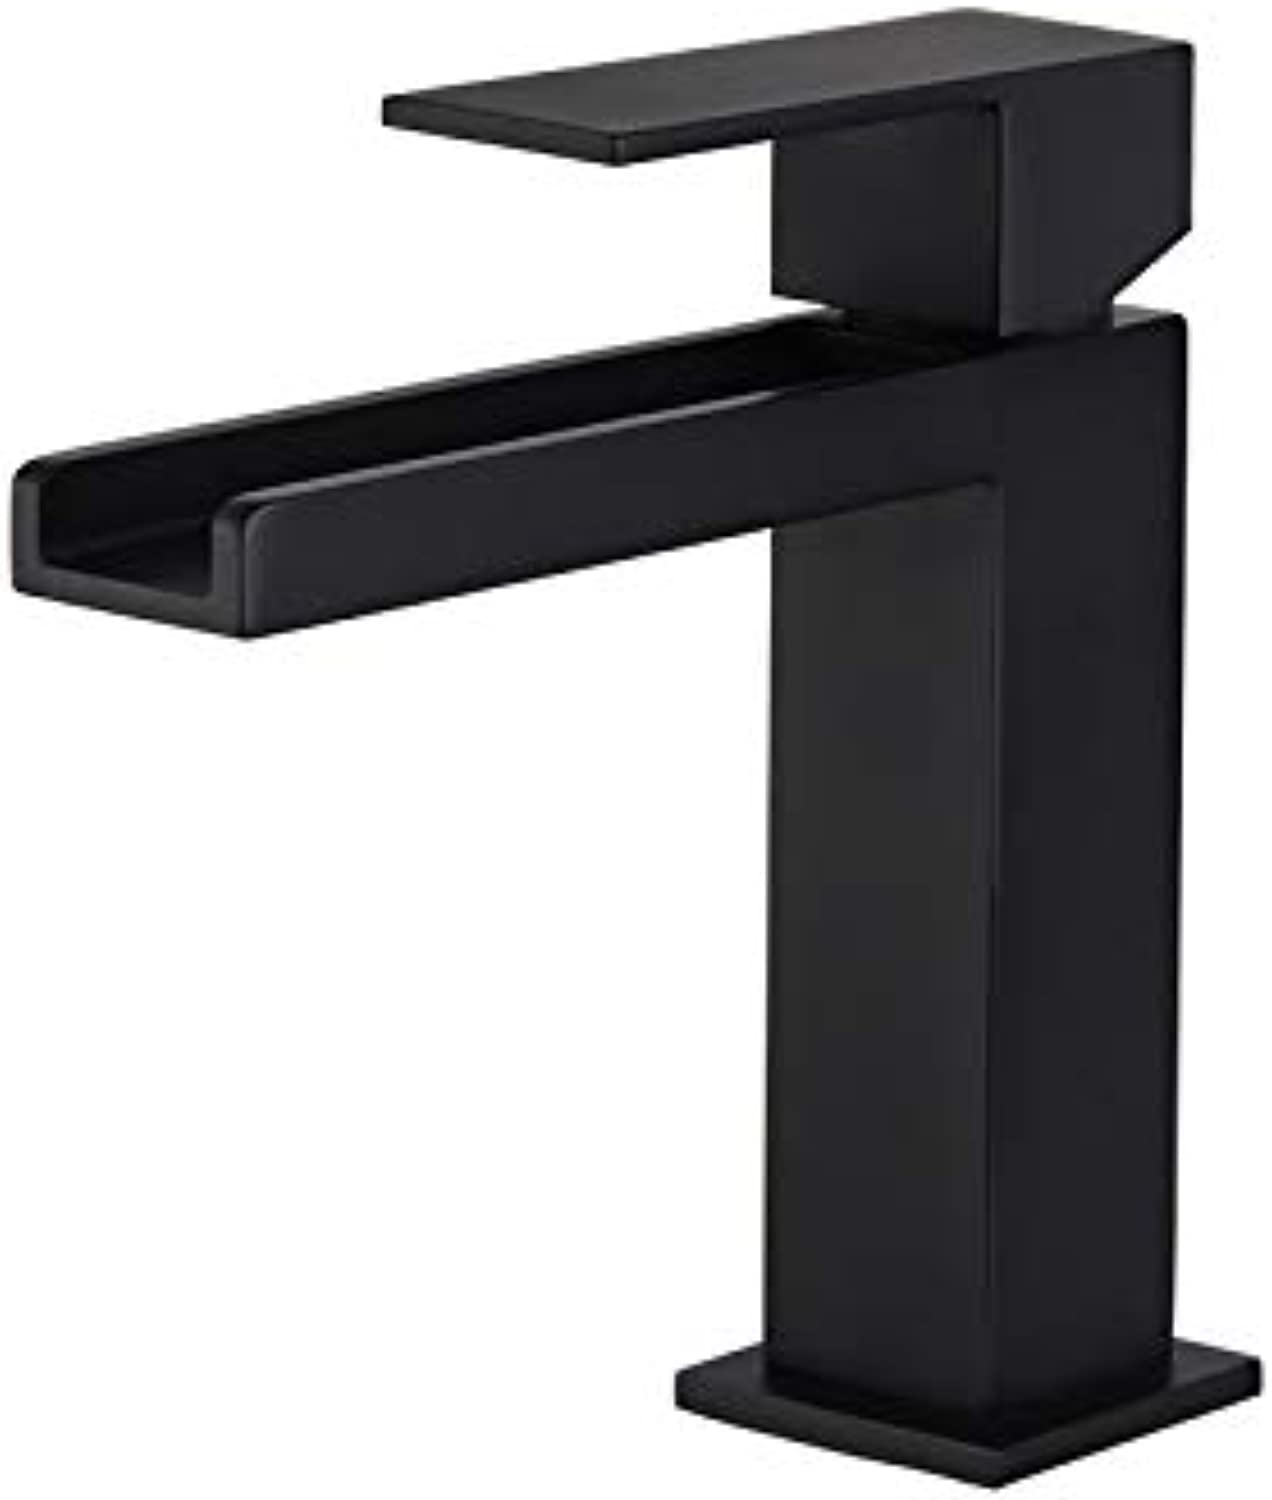 Copper Brushed gold Cold Faucet high Faucet golden Waterfall Black